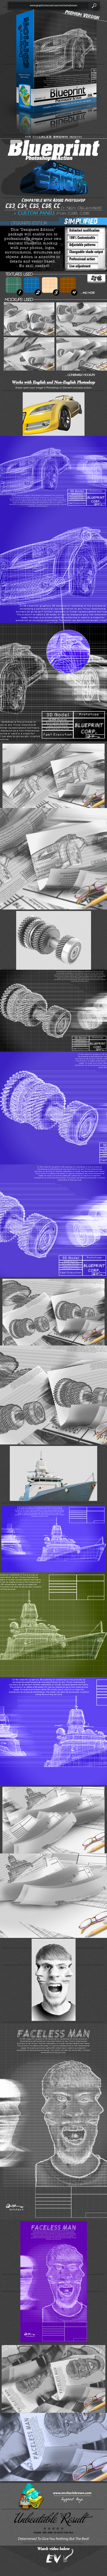 Blueprint photoshop action designers edition by mrcharlesbrown blueprint photoshop action designers edition photo effects actions malvernweather Gallery